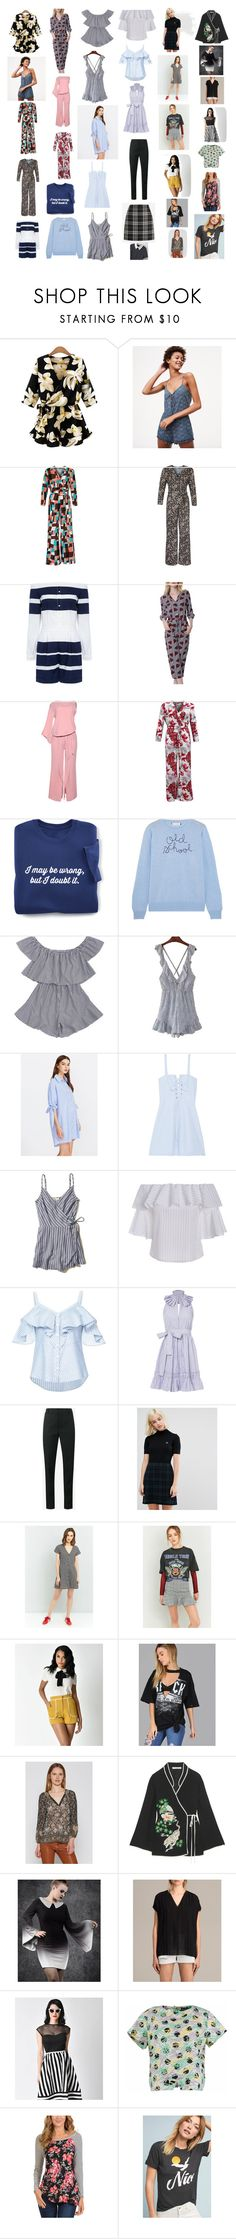 """""""More Misc. Clothing"""" by mikahelaine ❤ liked on Polyvore featuring WithChic, LOFT, 10 Crosby Derek Lam, Lingua Franca, Solid & Striped, Hollister Co., Veronica Beard, Alexis, Yves Saint Laurent and Fred Perry"""